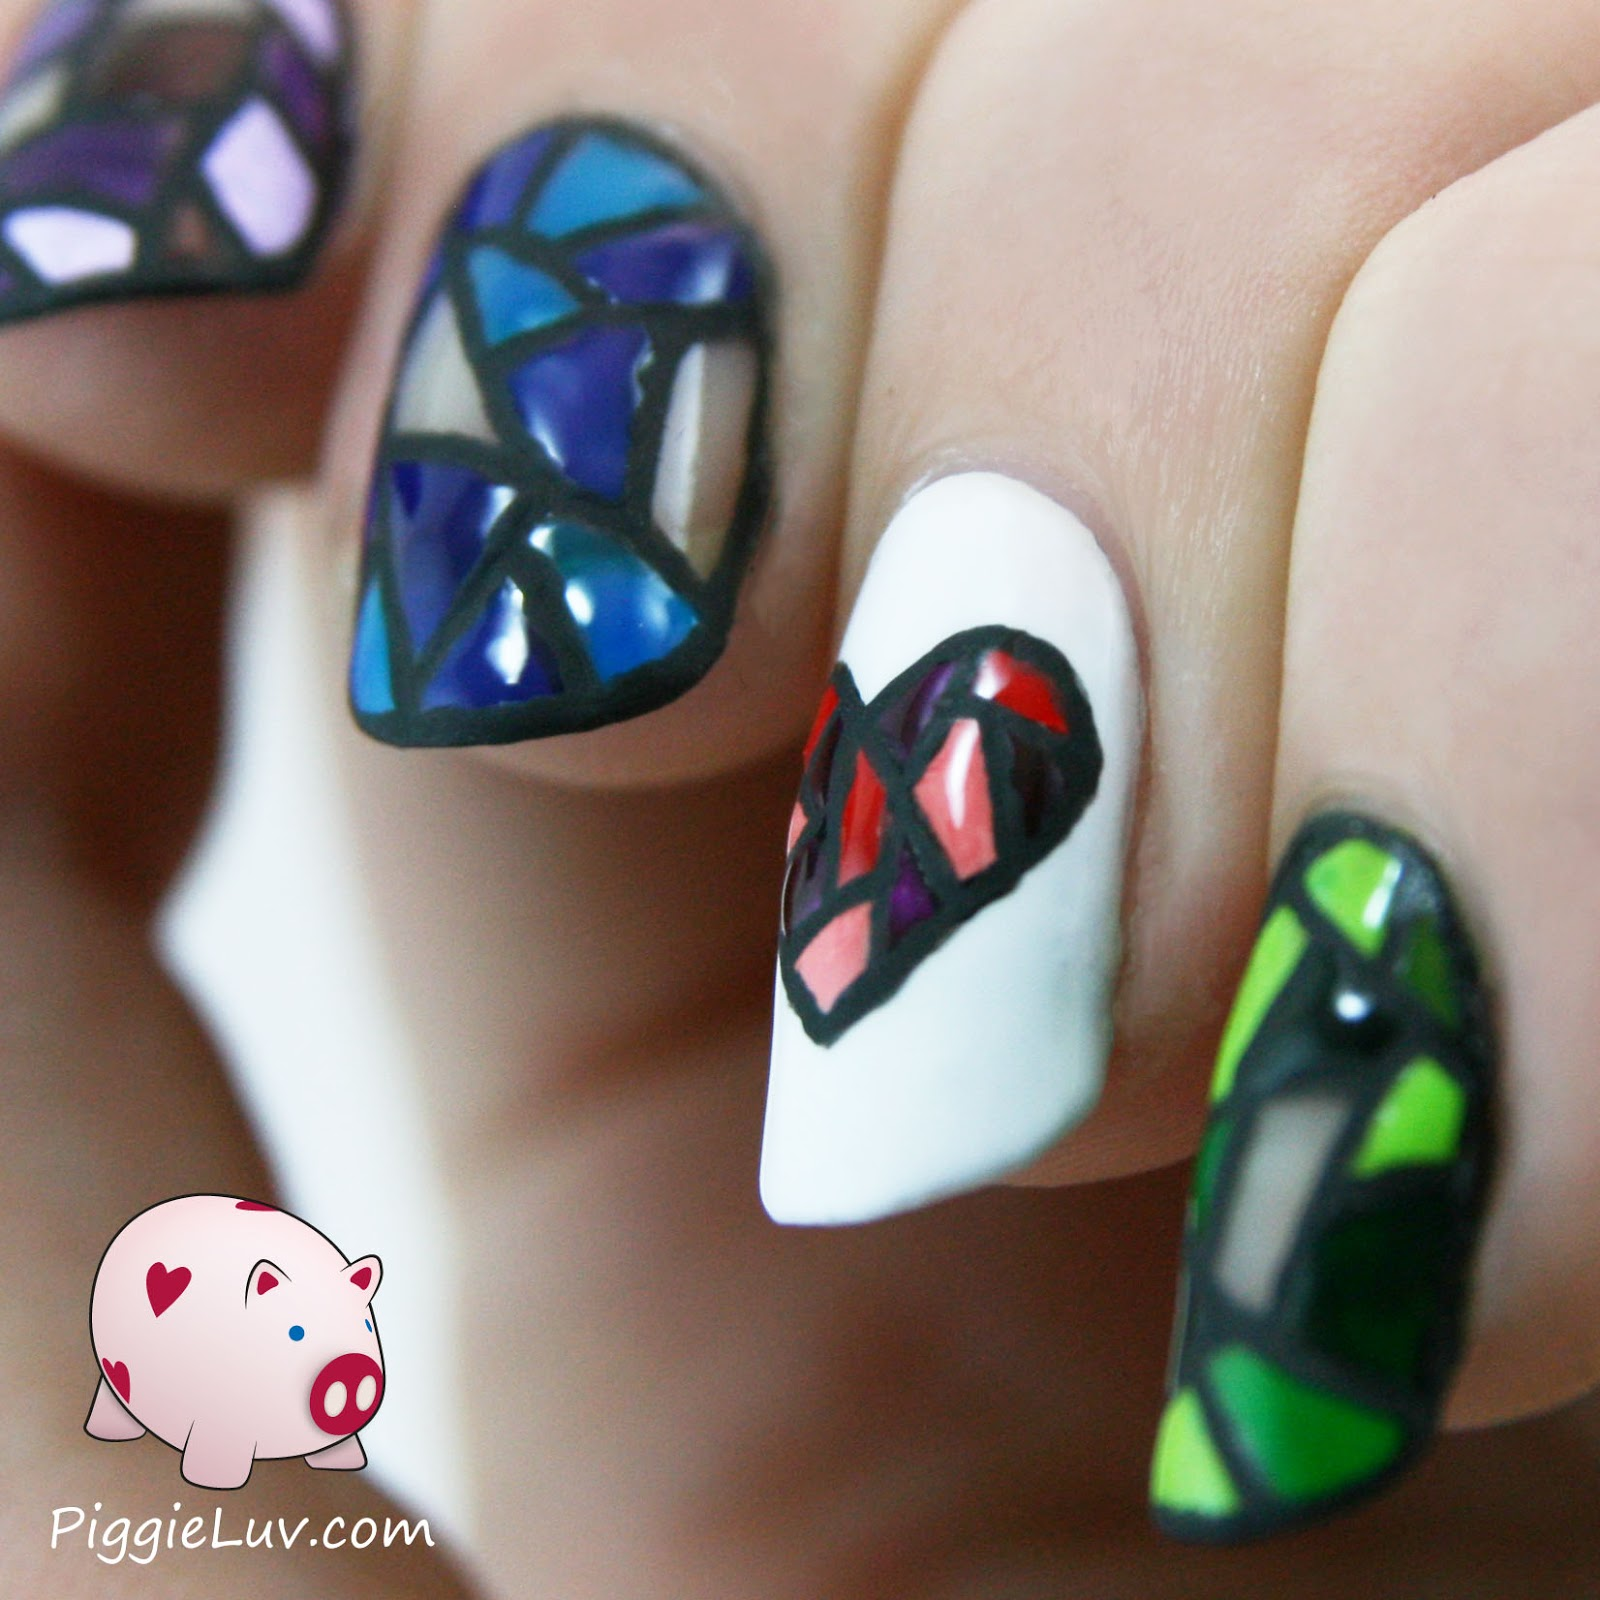 PiggieLuv: Stained glass twin nails!